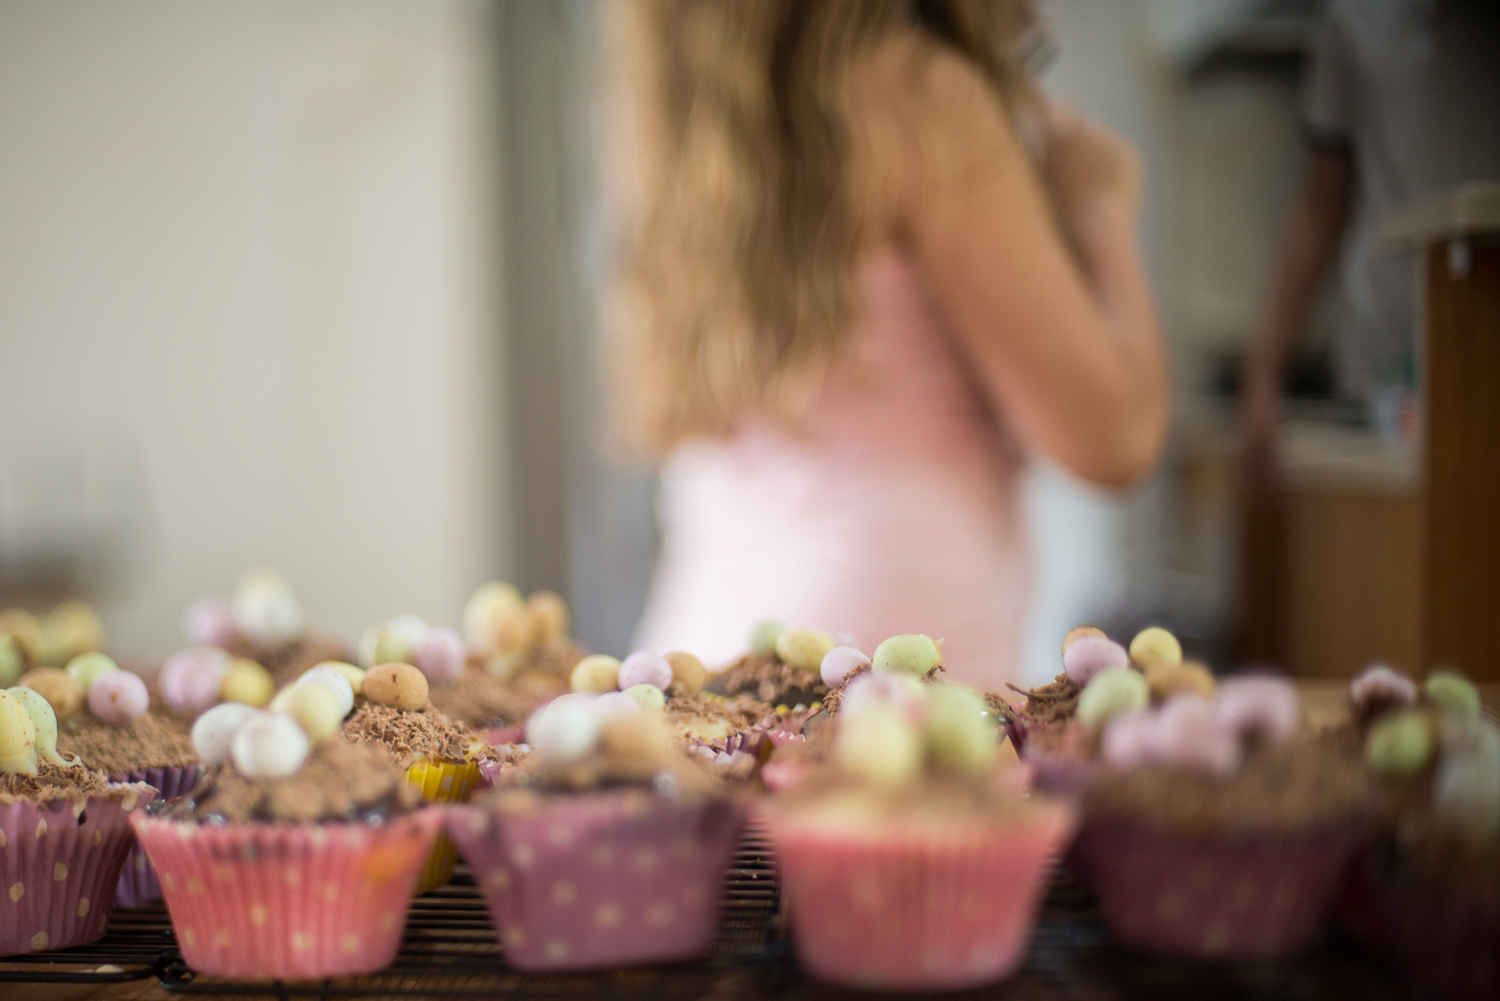 A girl makes vanilla cupcakes in her Sydney home during a lifestyle portrait session with Cindy Cavanagh